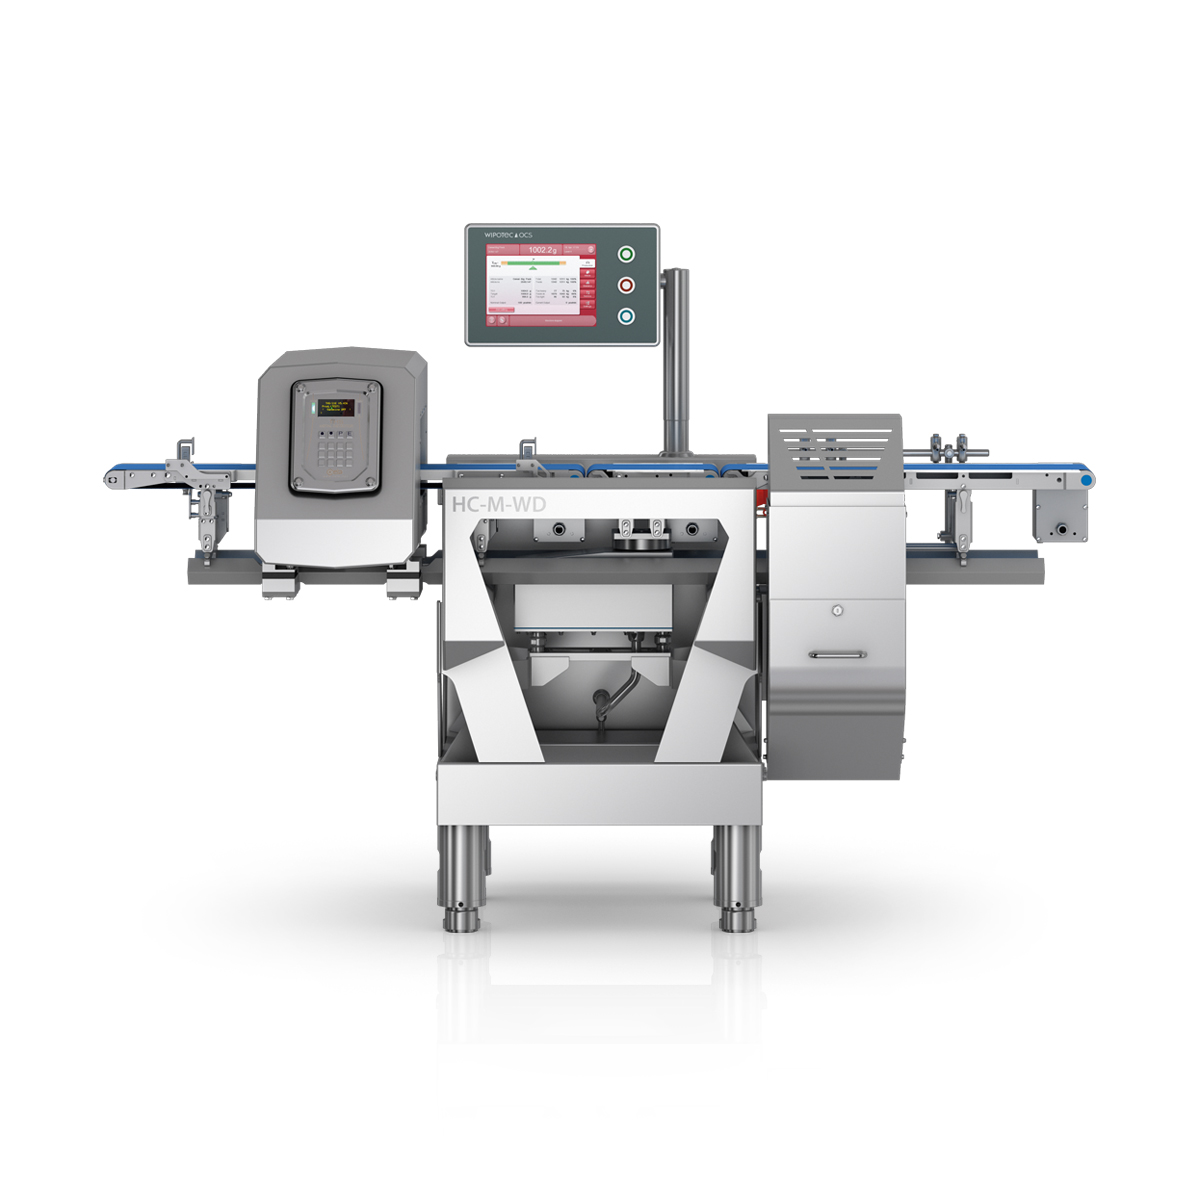 Checkweigher and metal detector HC-M-WD-MDi front view